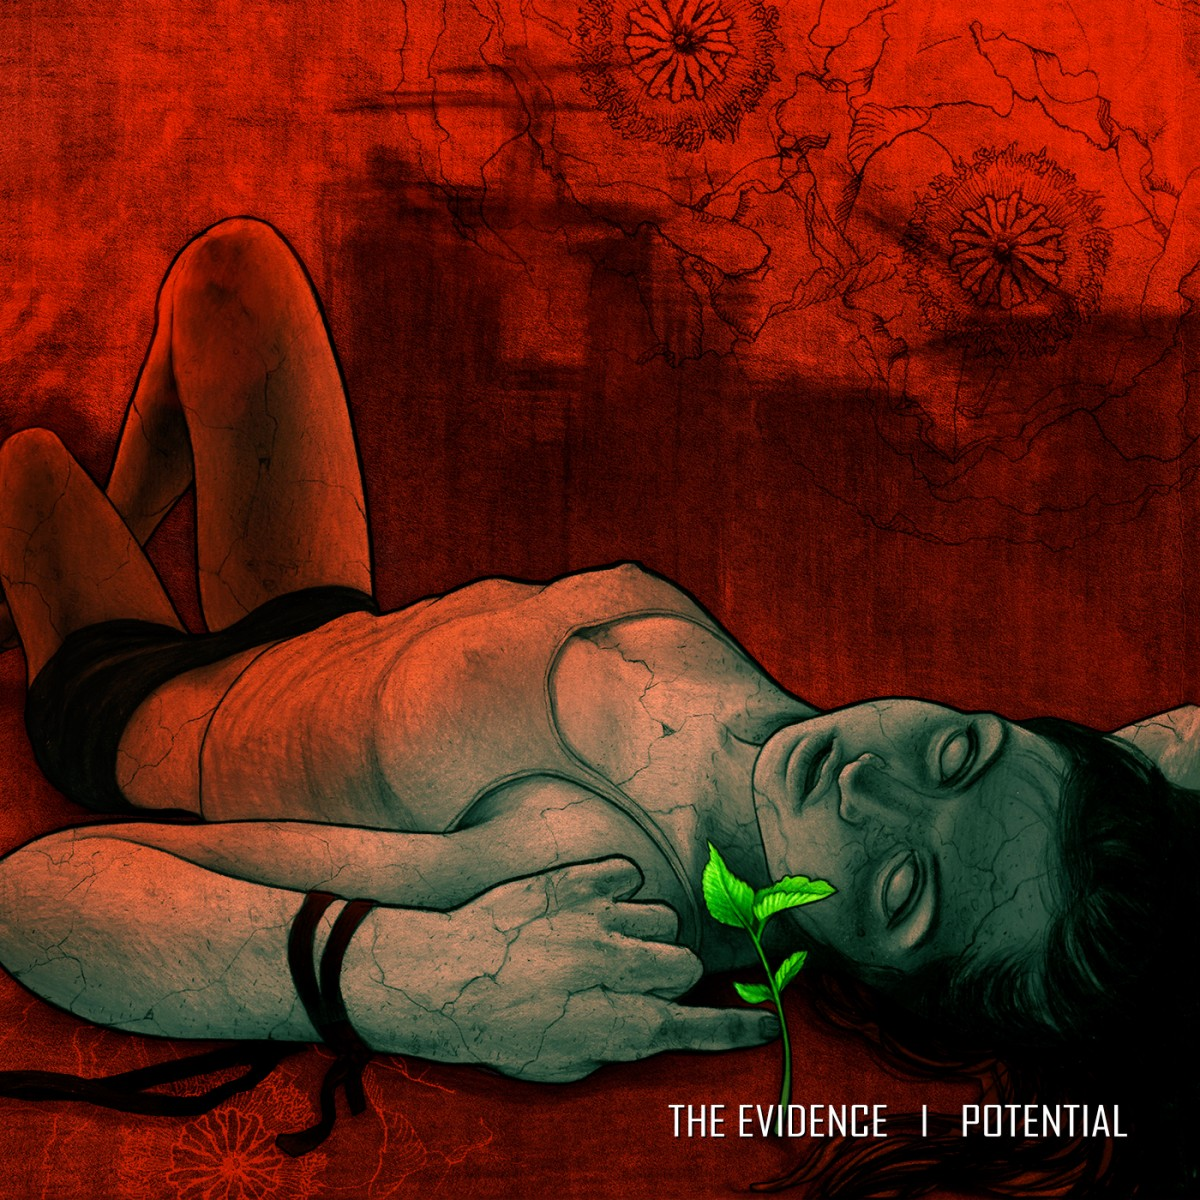 The Evidence - Potential